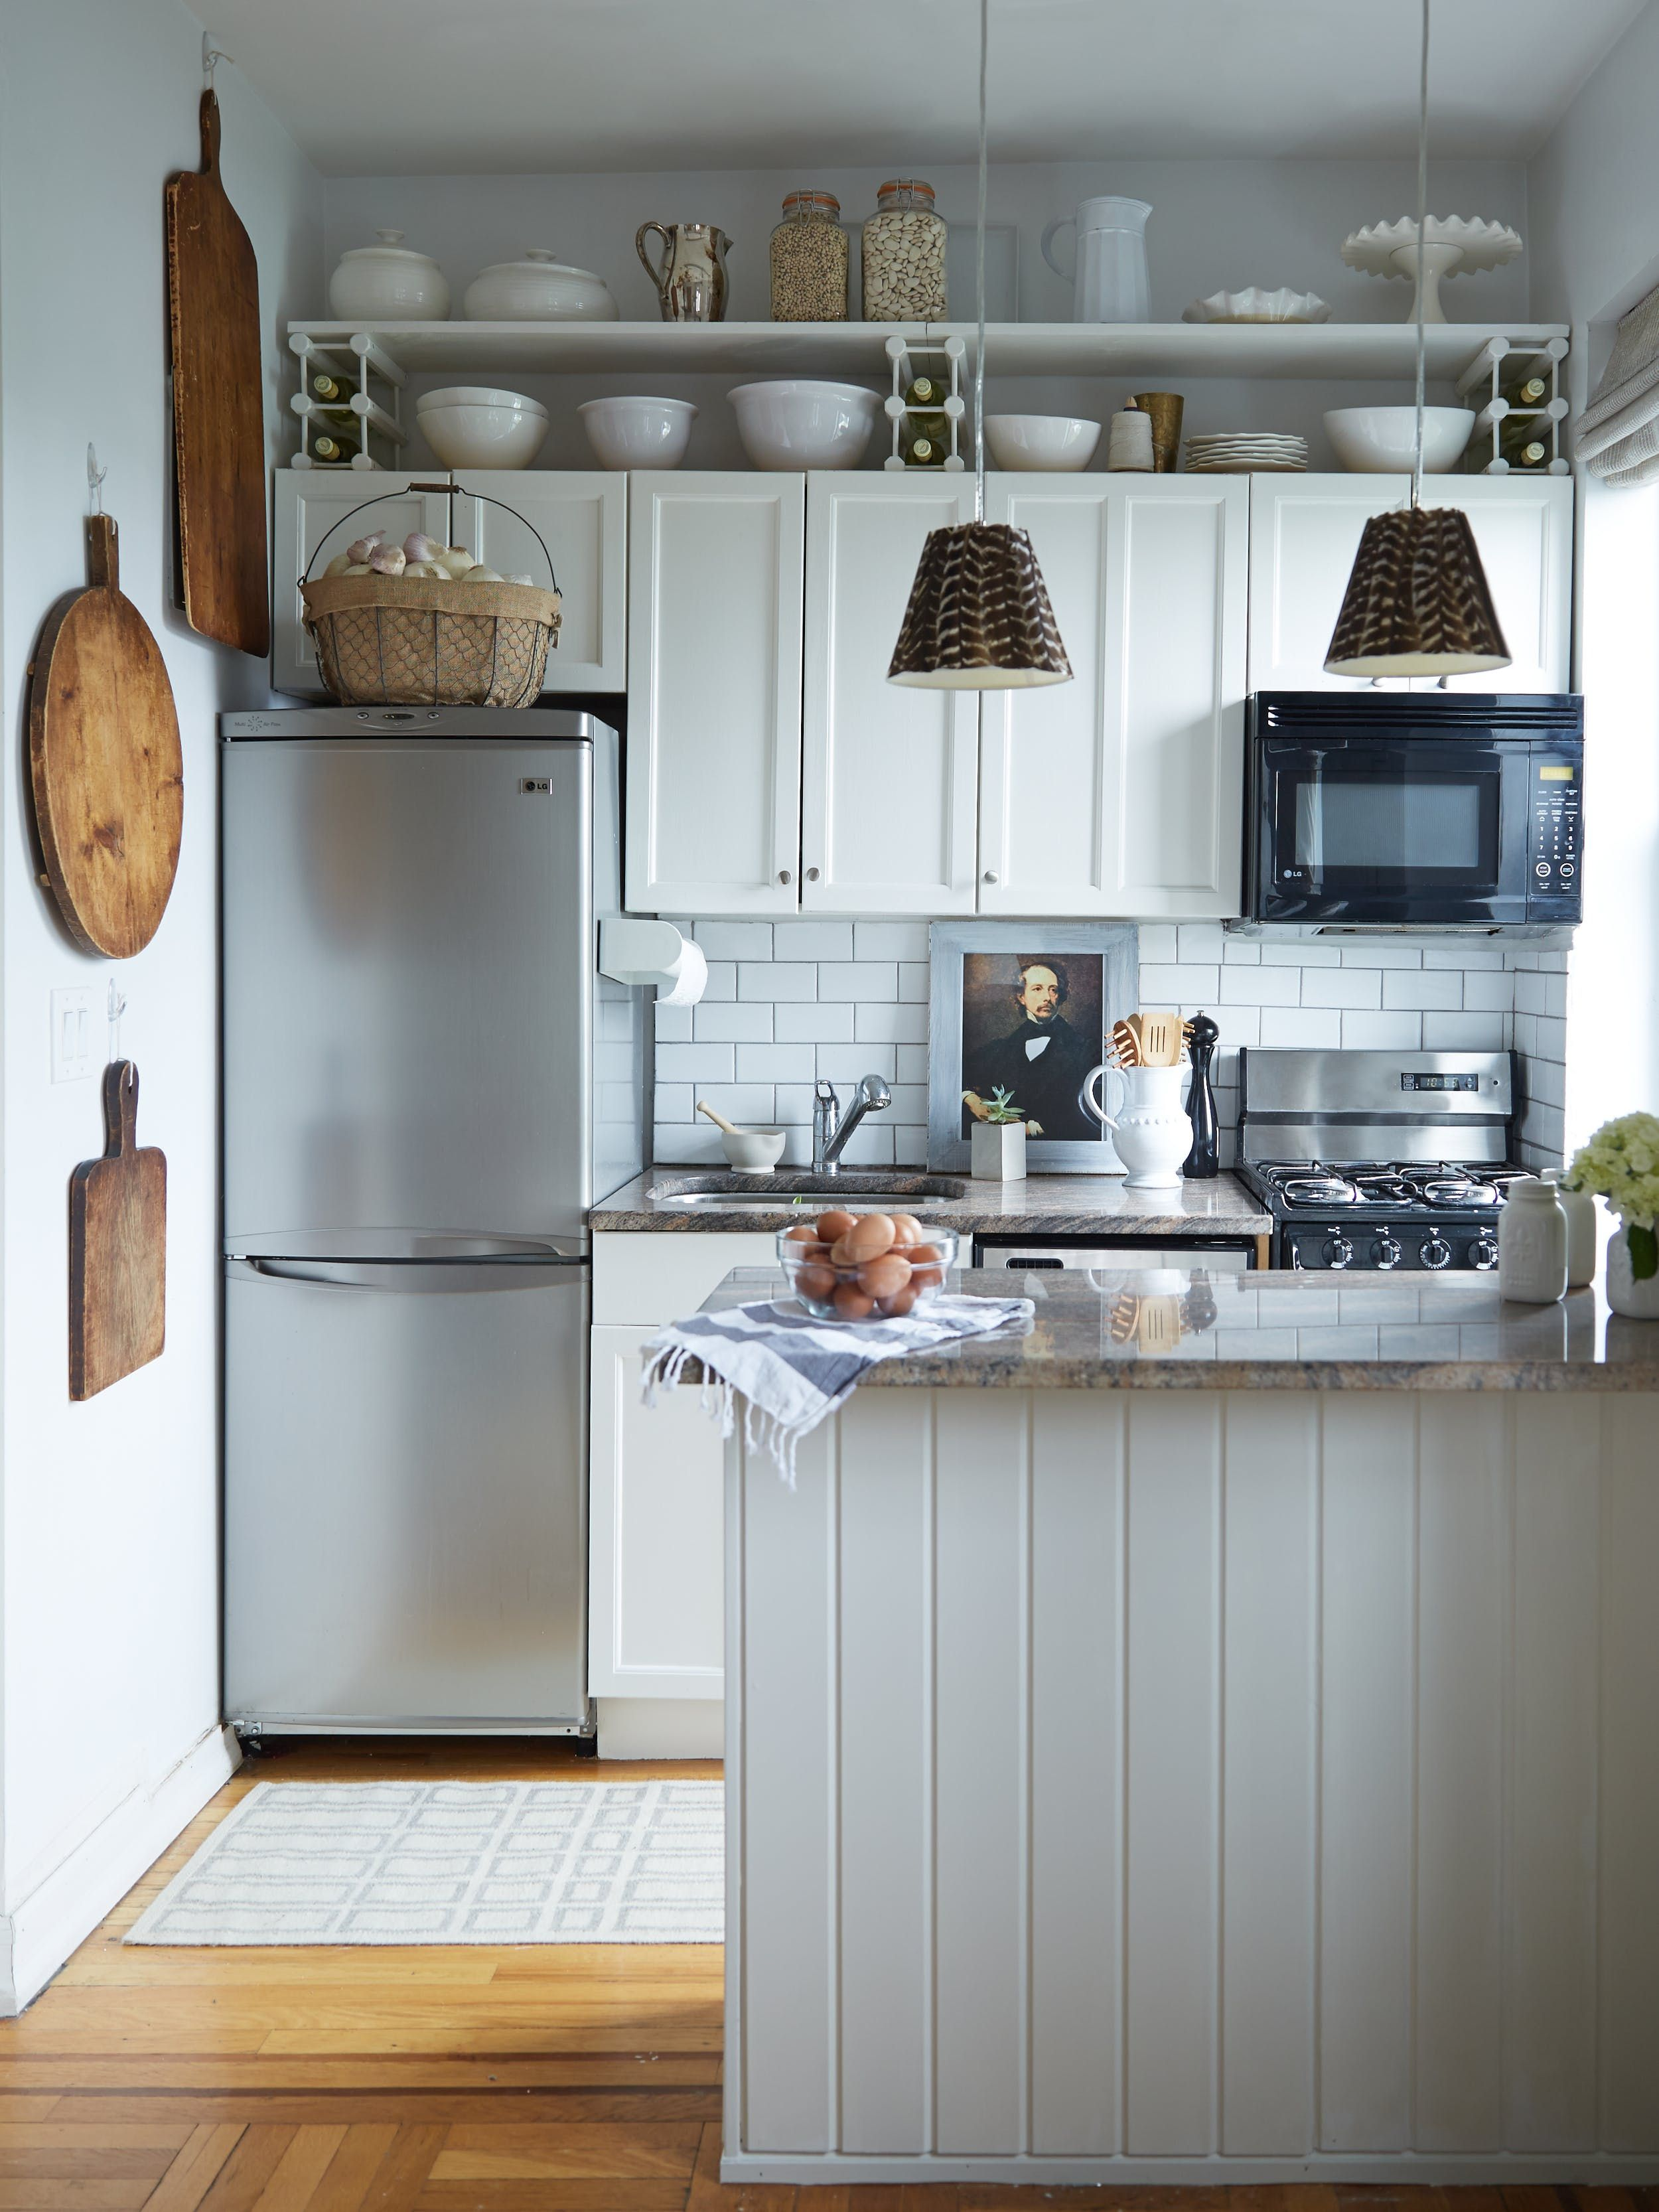 Marvelous 9 Perfect Places To Put Shelves In A Small Space Nice Look